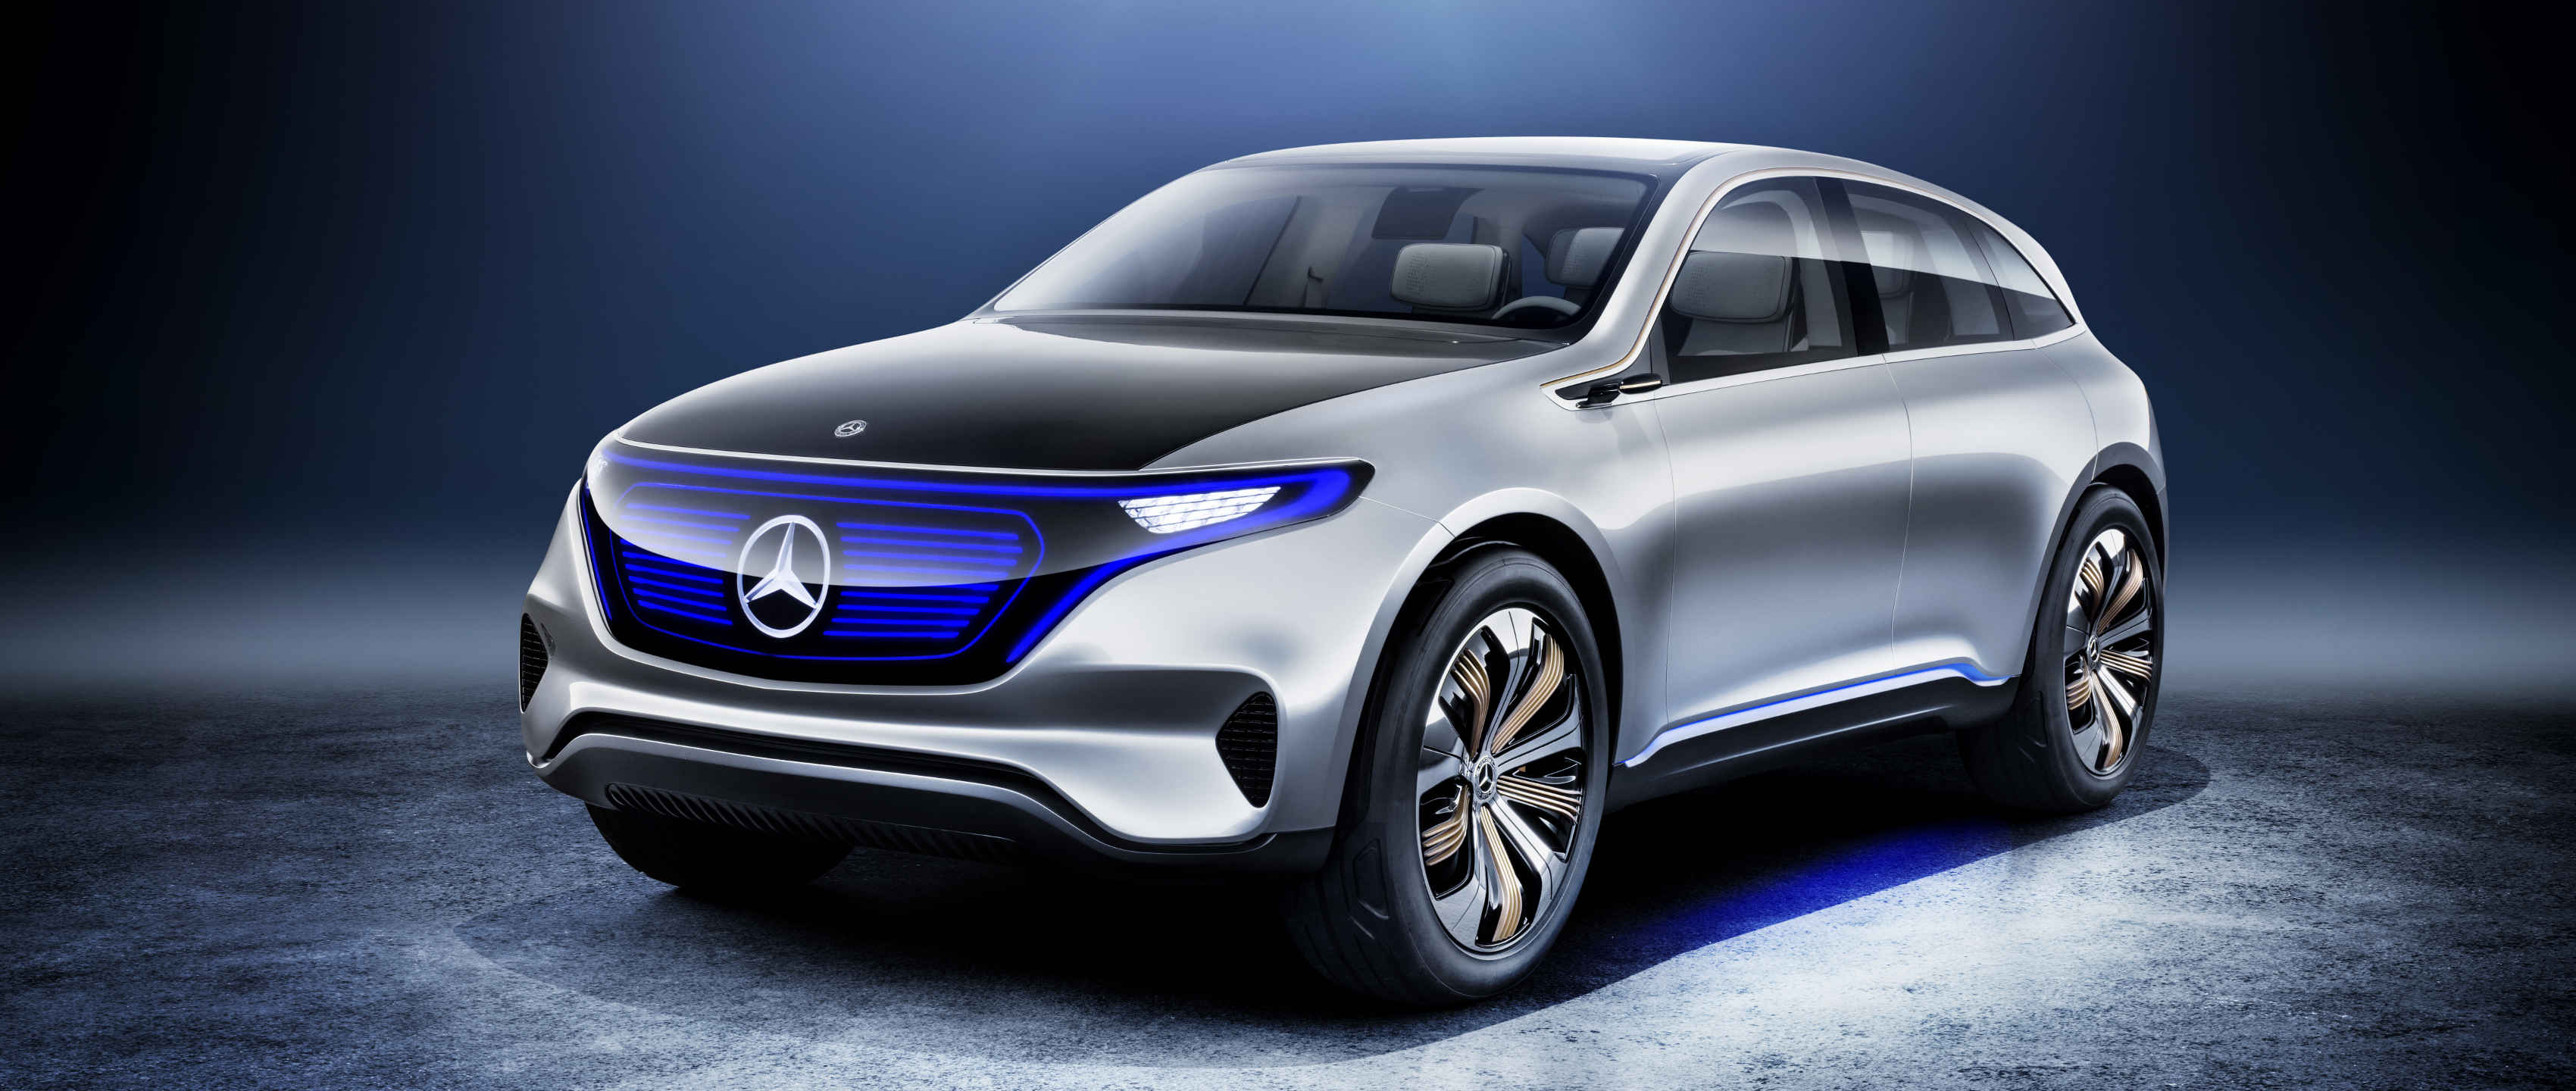 Photo of Mercedes-Benz's concept EQ : All we know